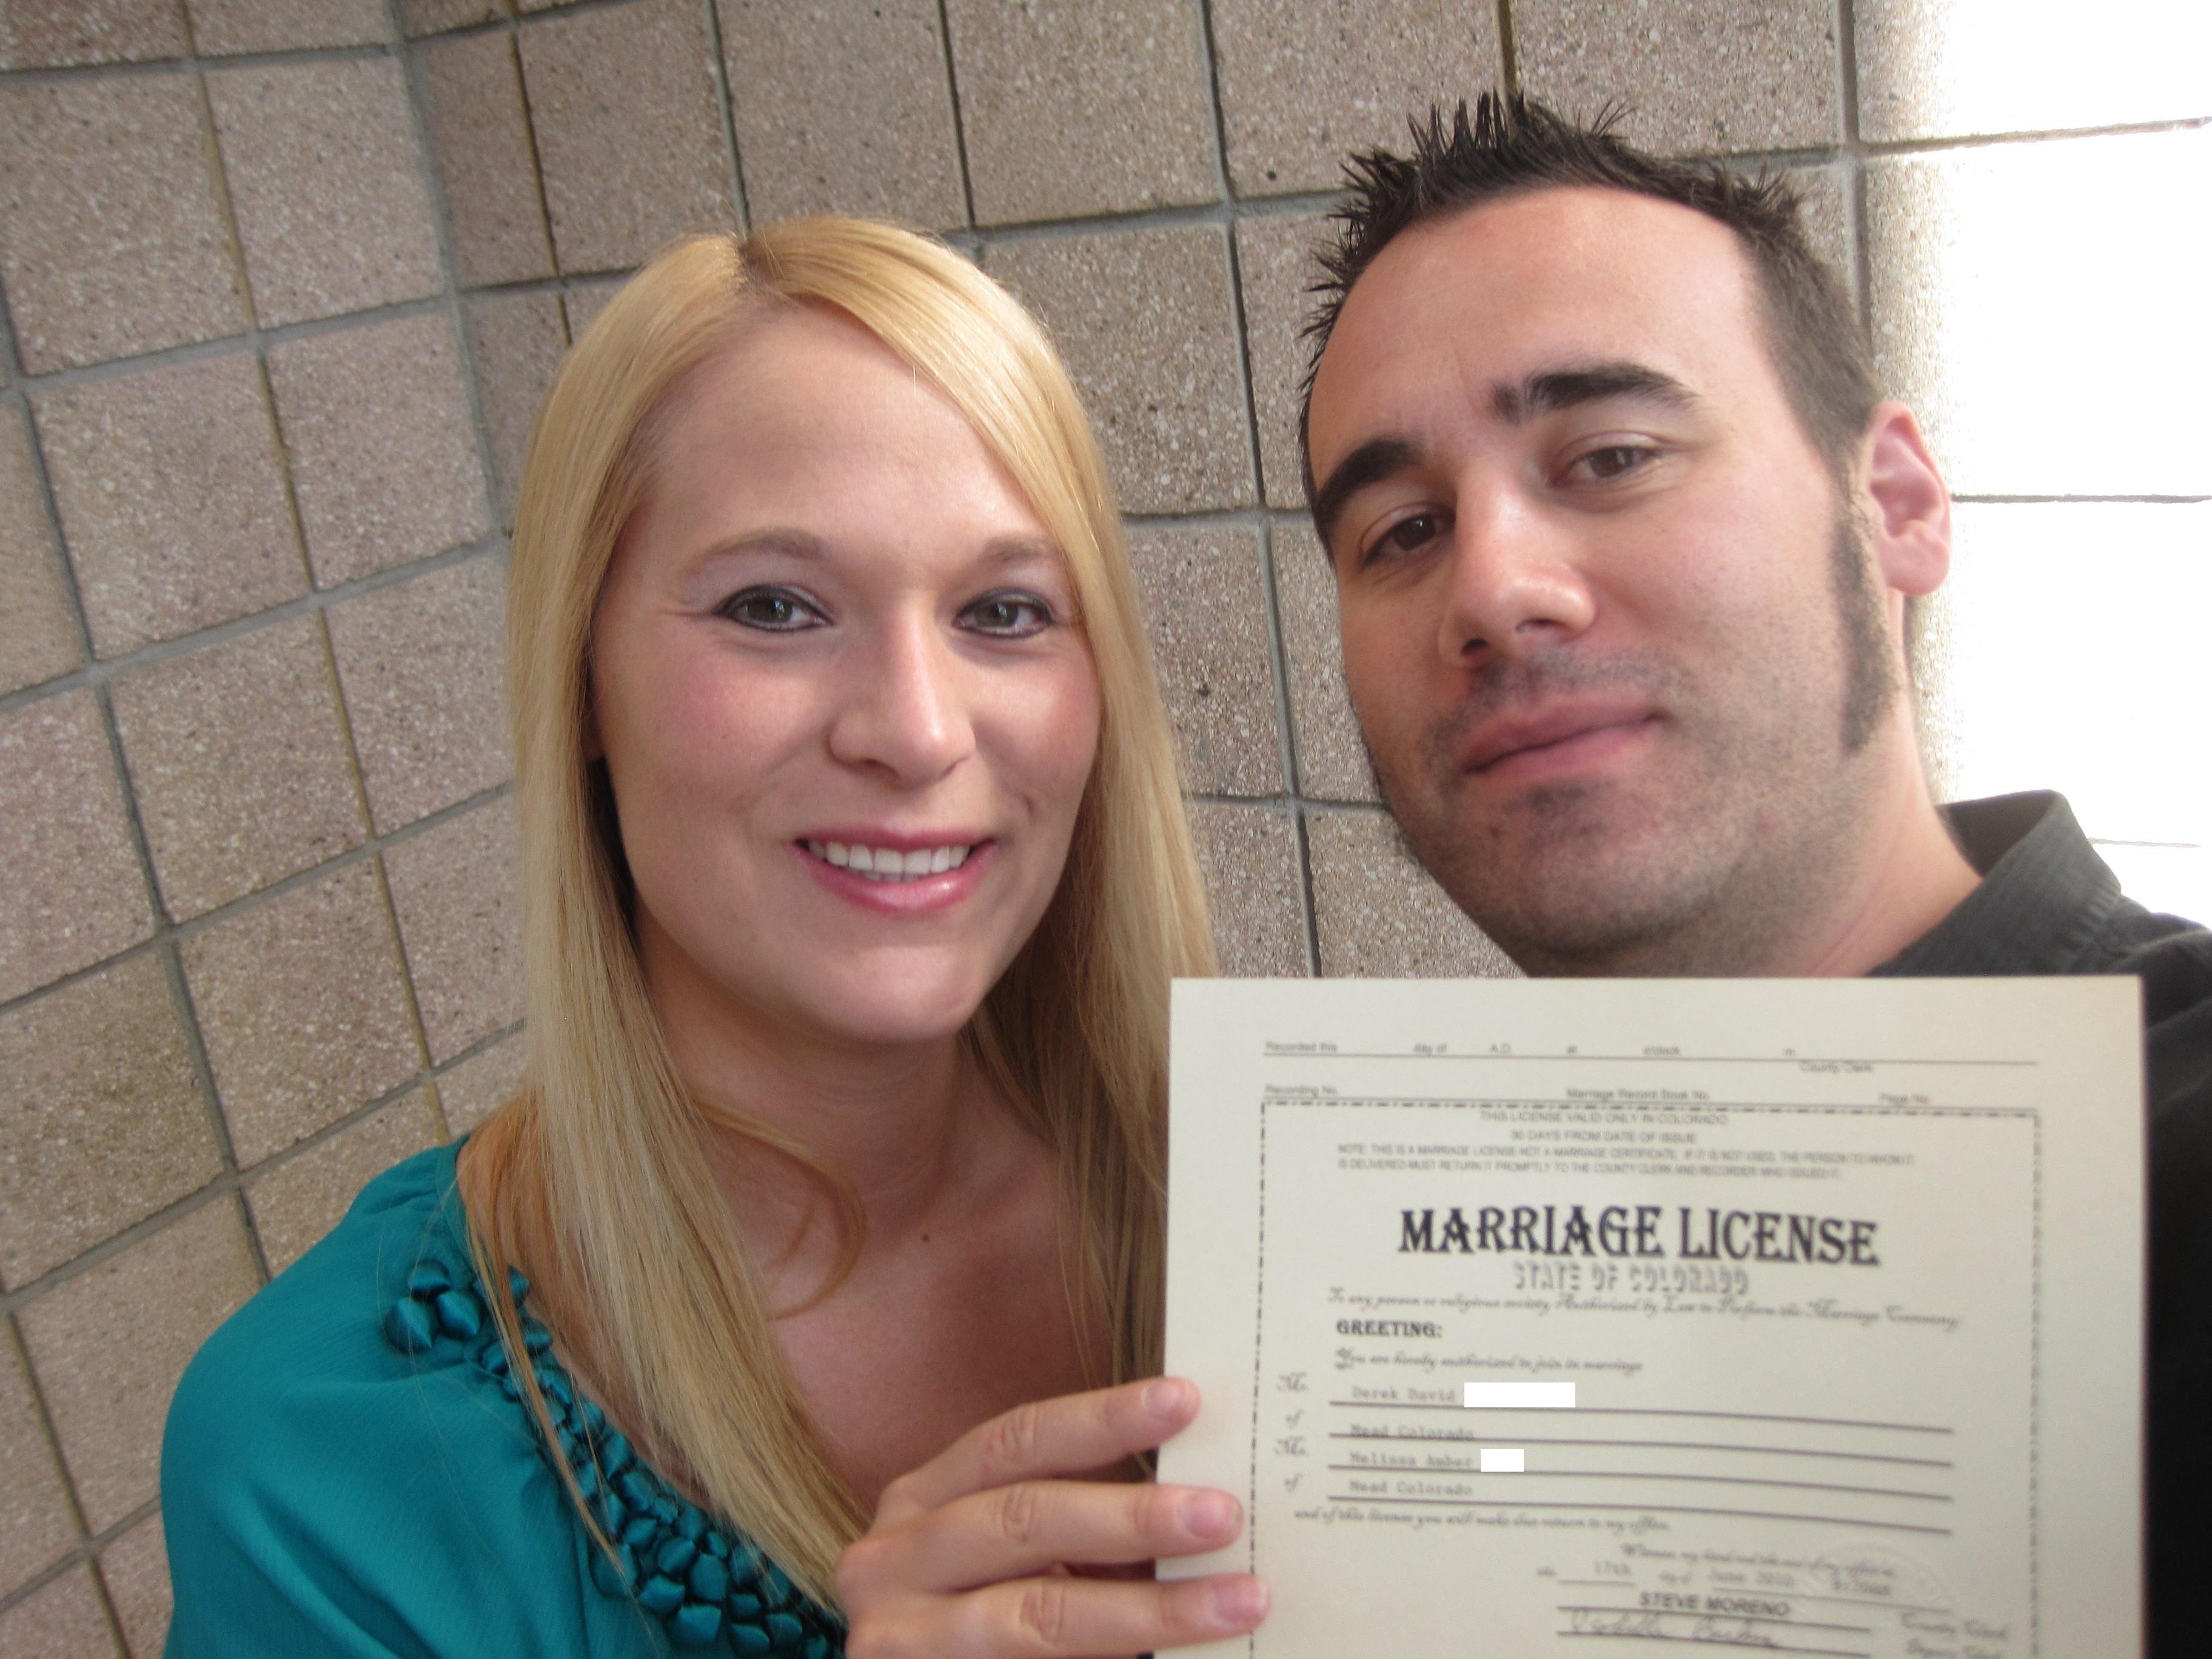 License, Marriage